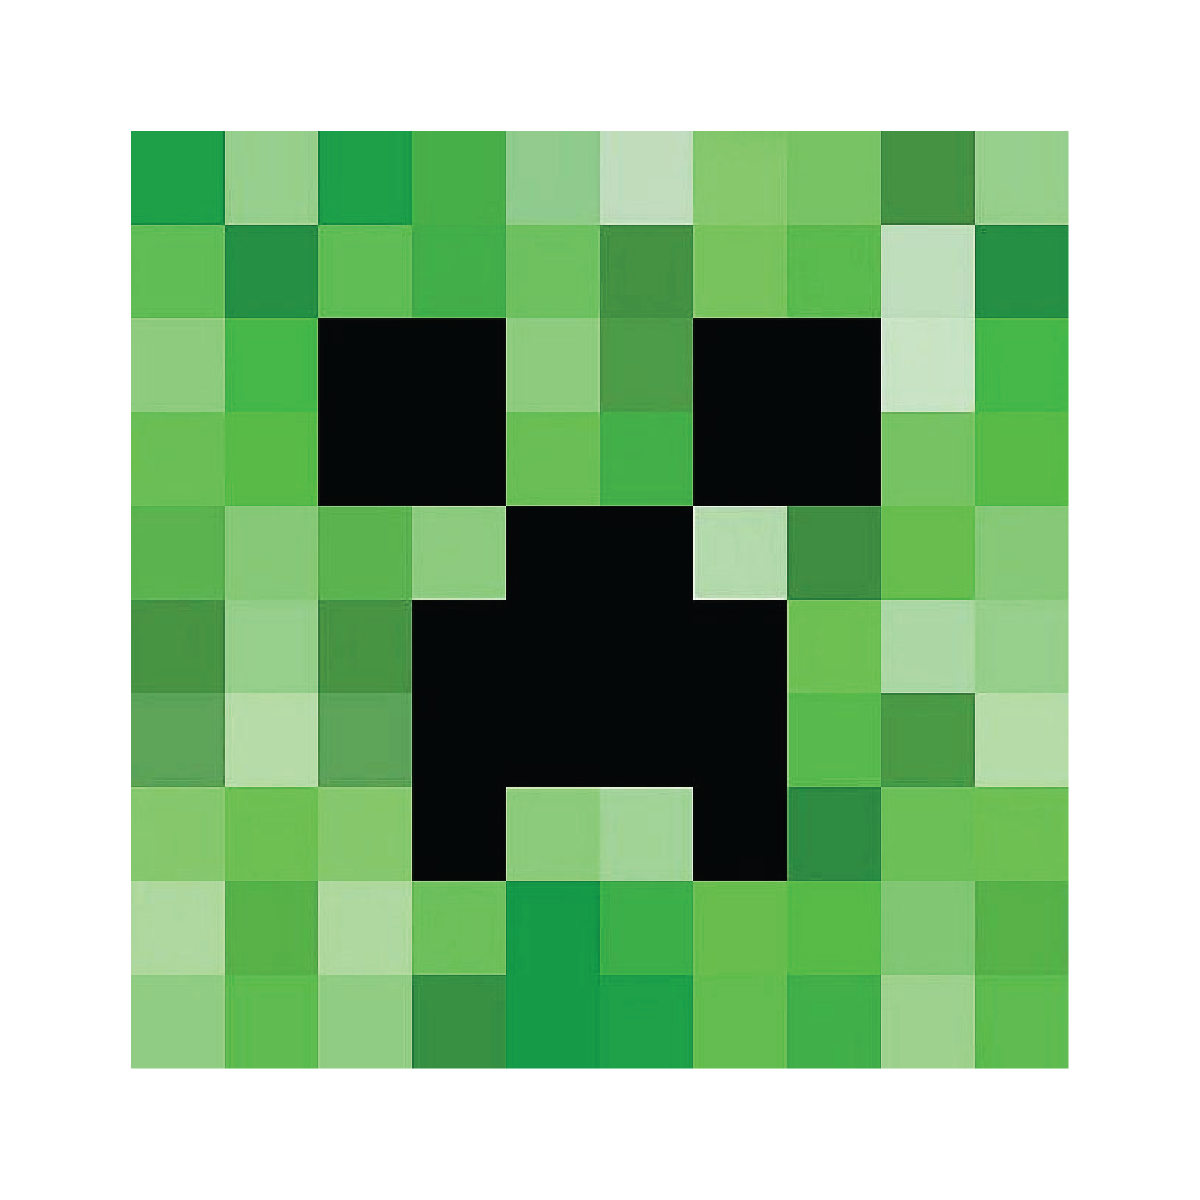 Minecraft apple clipart jpg royalty free stock Free Minecraft Homeschool Resources: Printables, Crafts, Snacks ... jpg royalty free stock